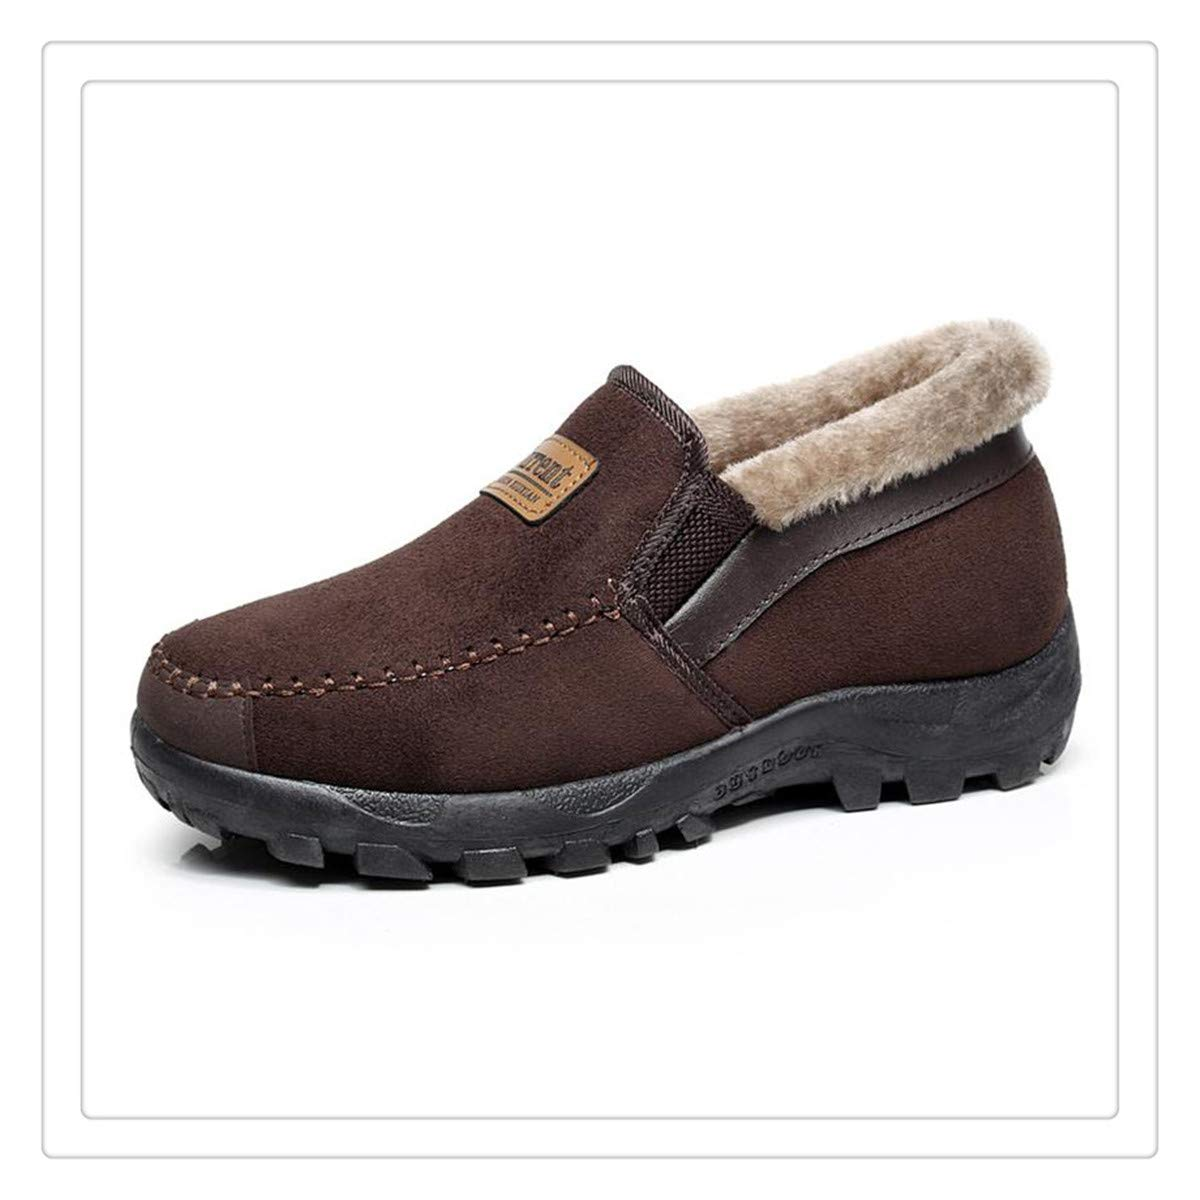 Snow Boots Plush Super Warm Suede Leather Boots Work Shoes Outdoor Lover Shoes